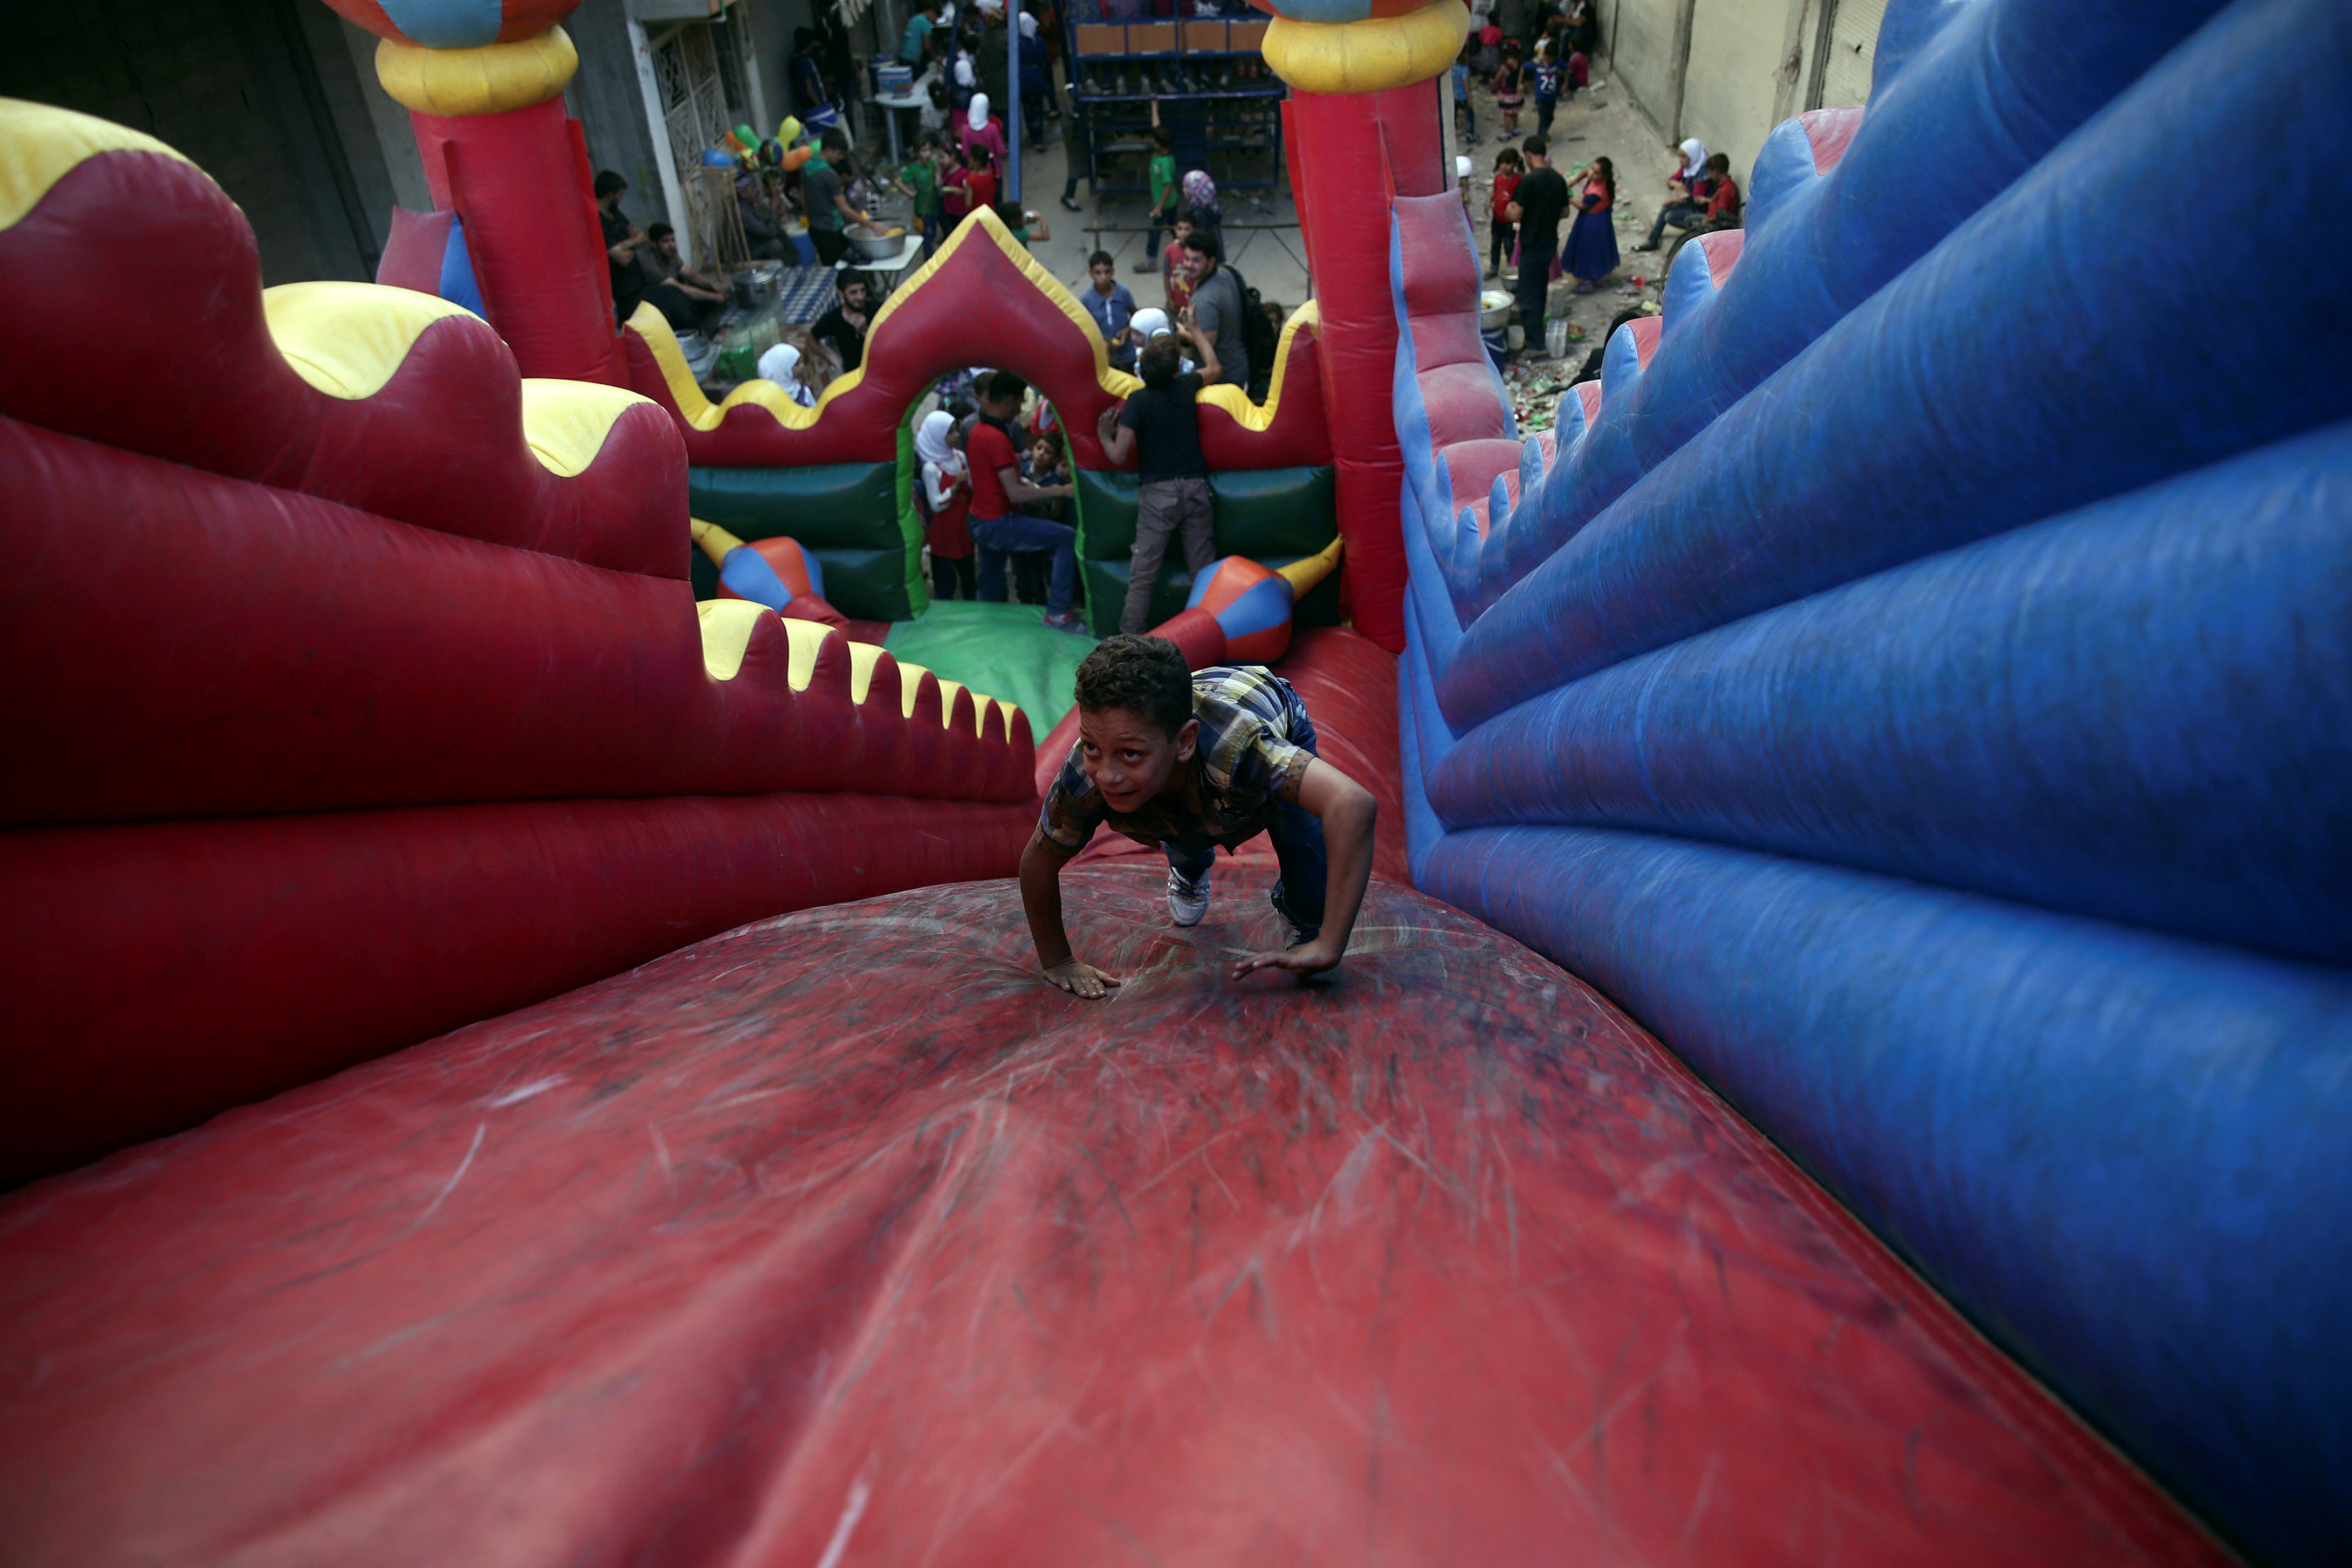 Children played on the bouncy castle on the last day of the Muslim holiday of Eid al-Adha in the rebel held besieged town of Hamouriyeh, outside of the Syrian capital of Damascus on Thursday, September 15, 2016.